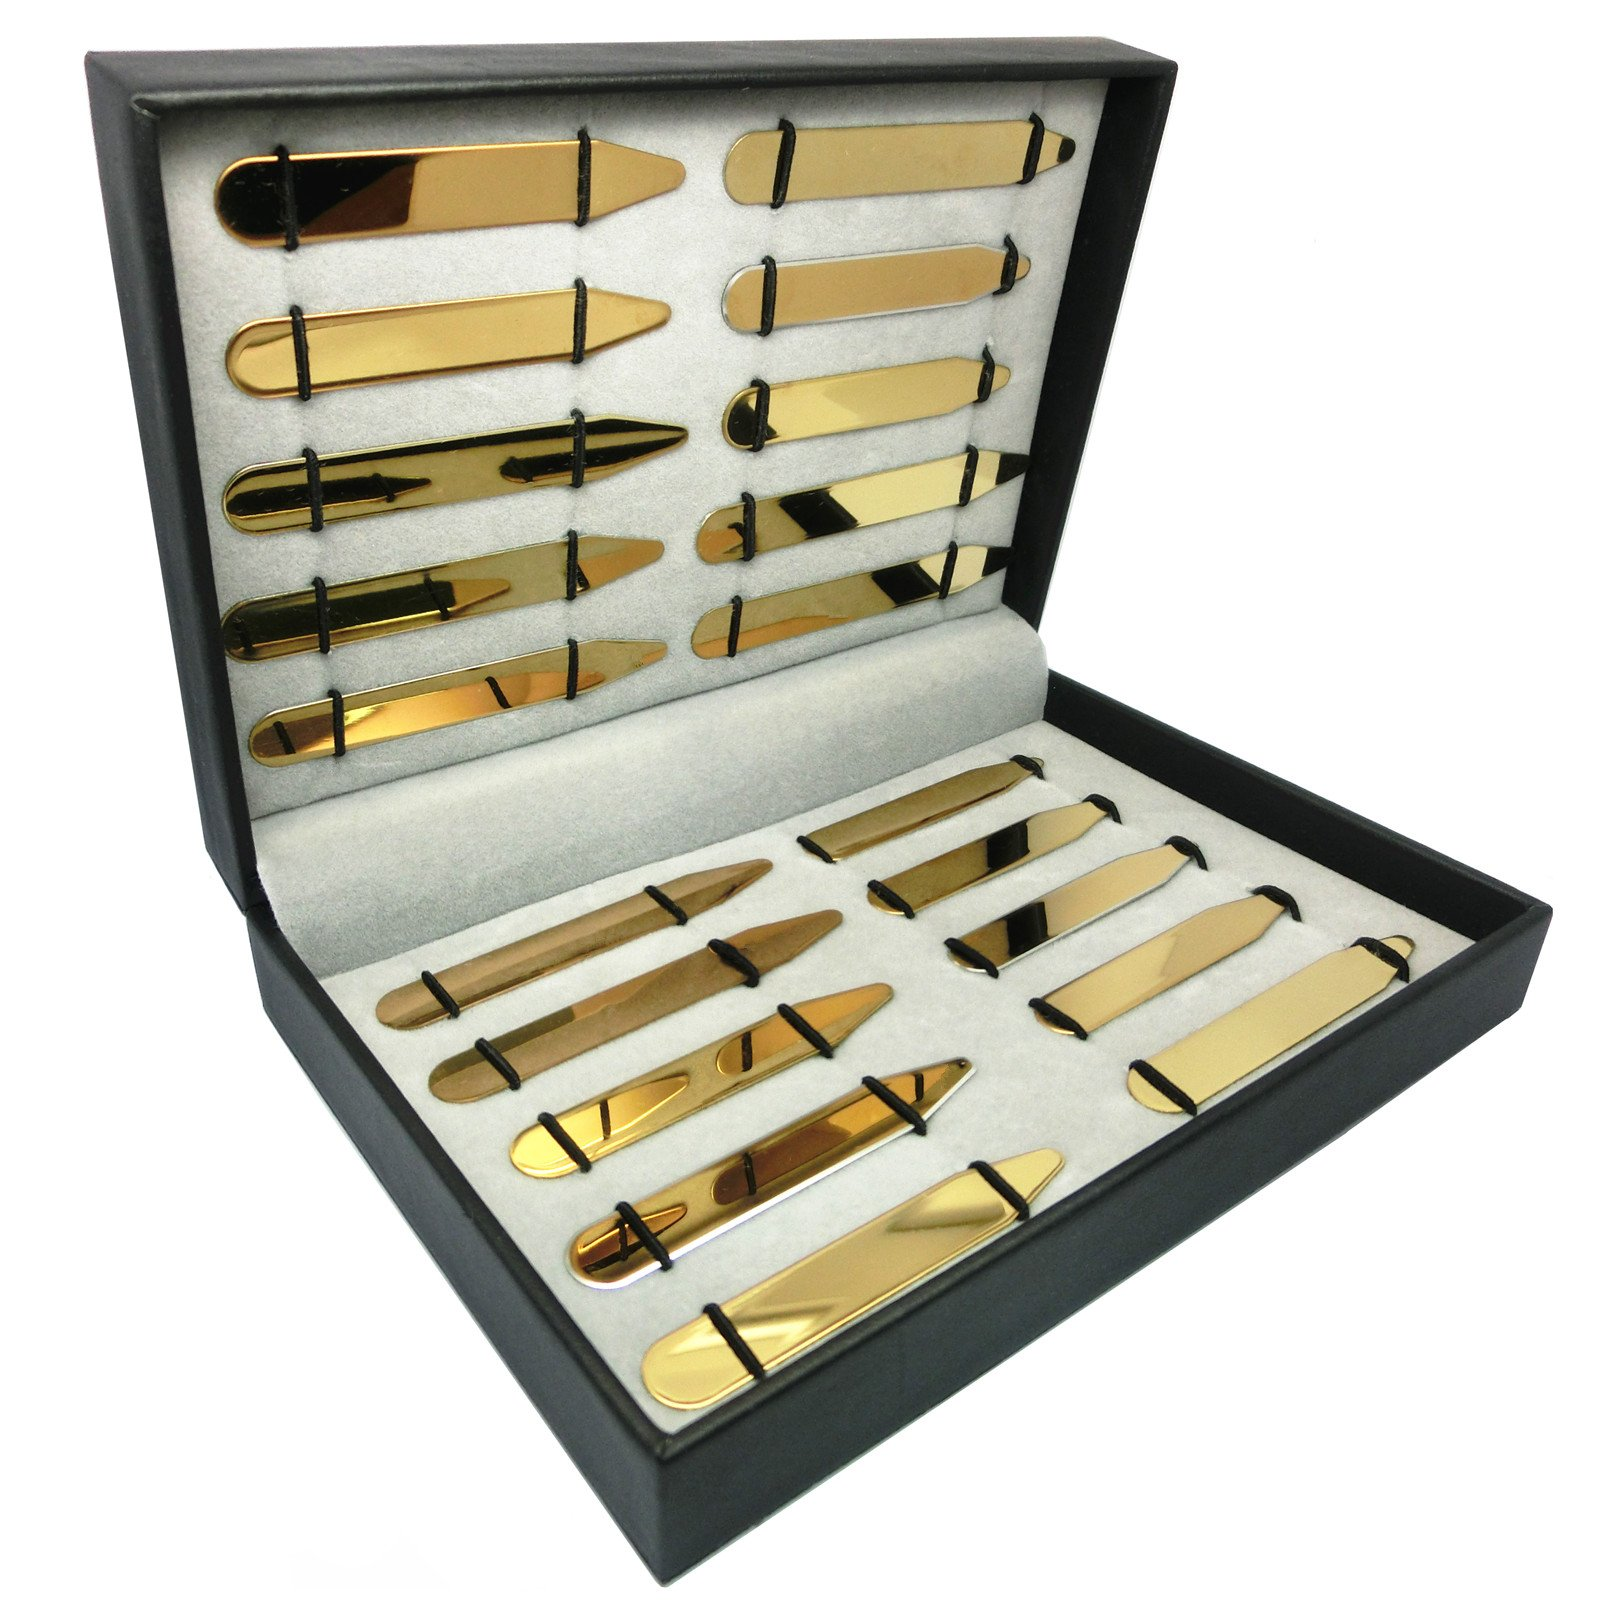 Shang Zun (Free Custom) 20 Pcs Stainless Steel Collar Stays in Box,Golden,5 Sizes